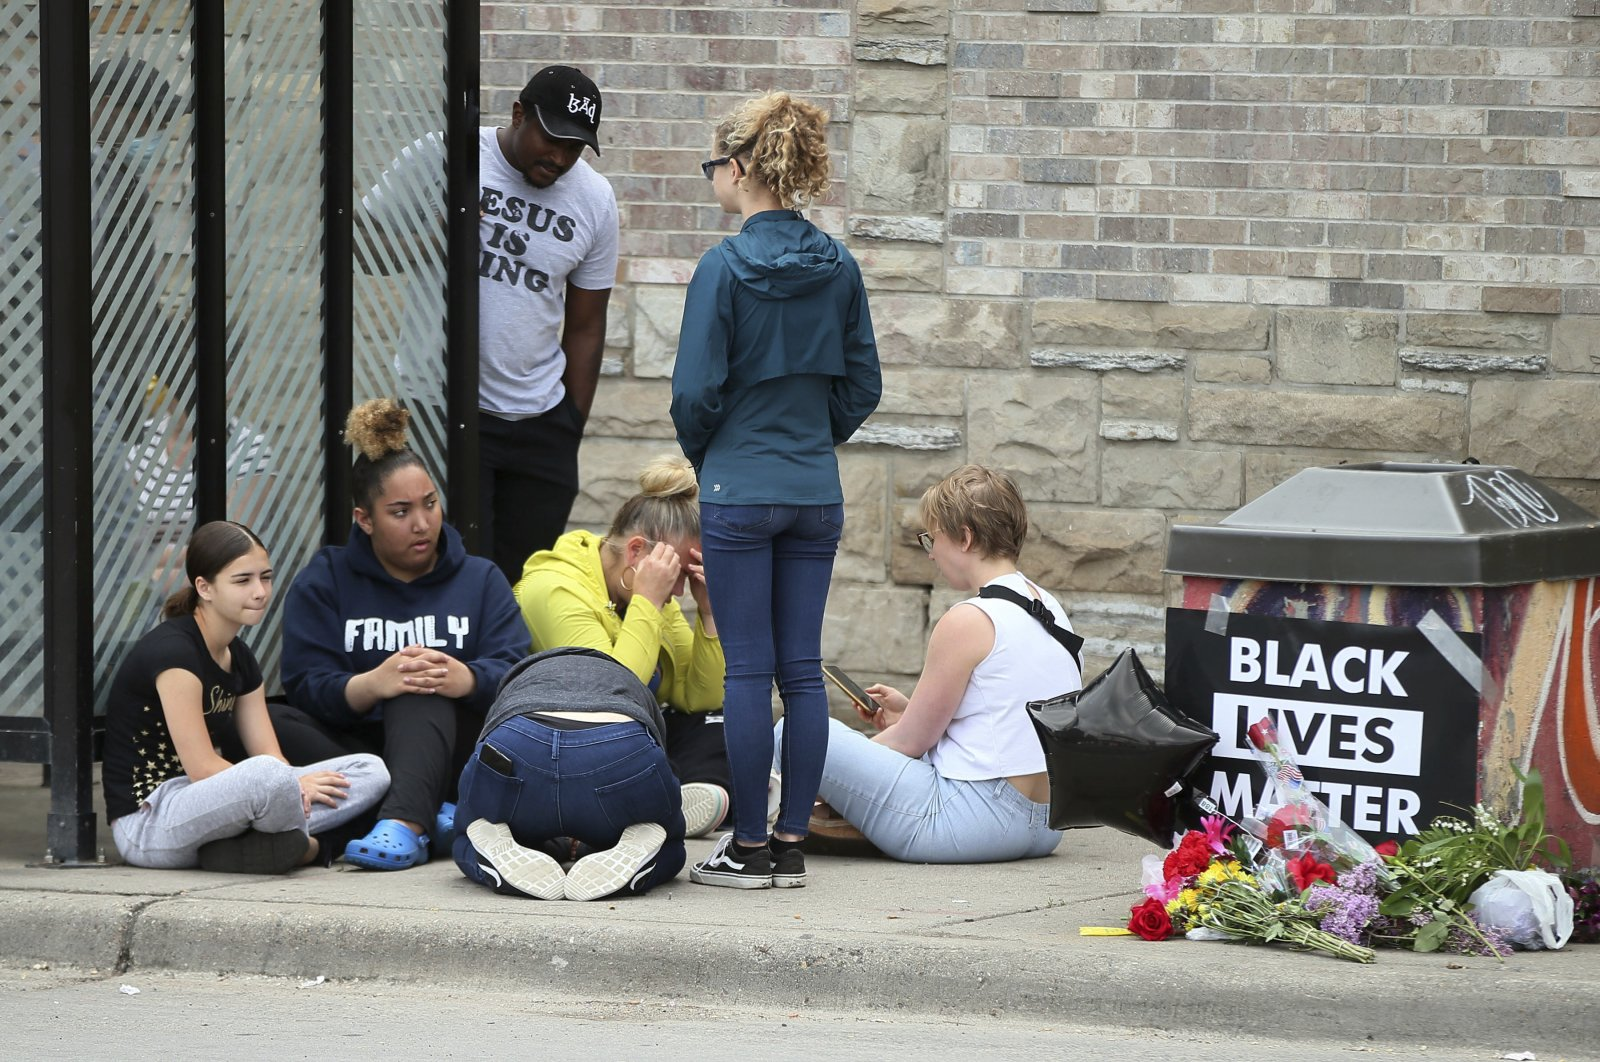 Mourners gather around a makeshift memorial near where a black man was arrested by police and later died, Minneapolis, Minnesota, May 26, 2020. (AP Photo)